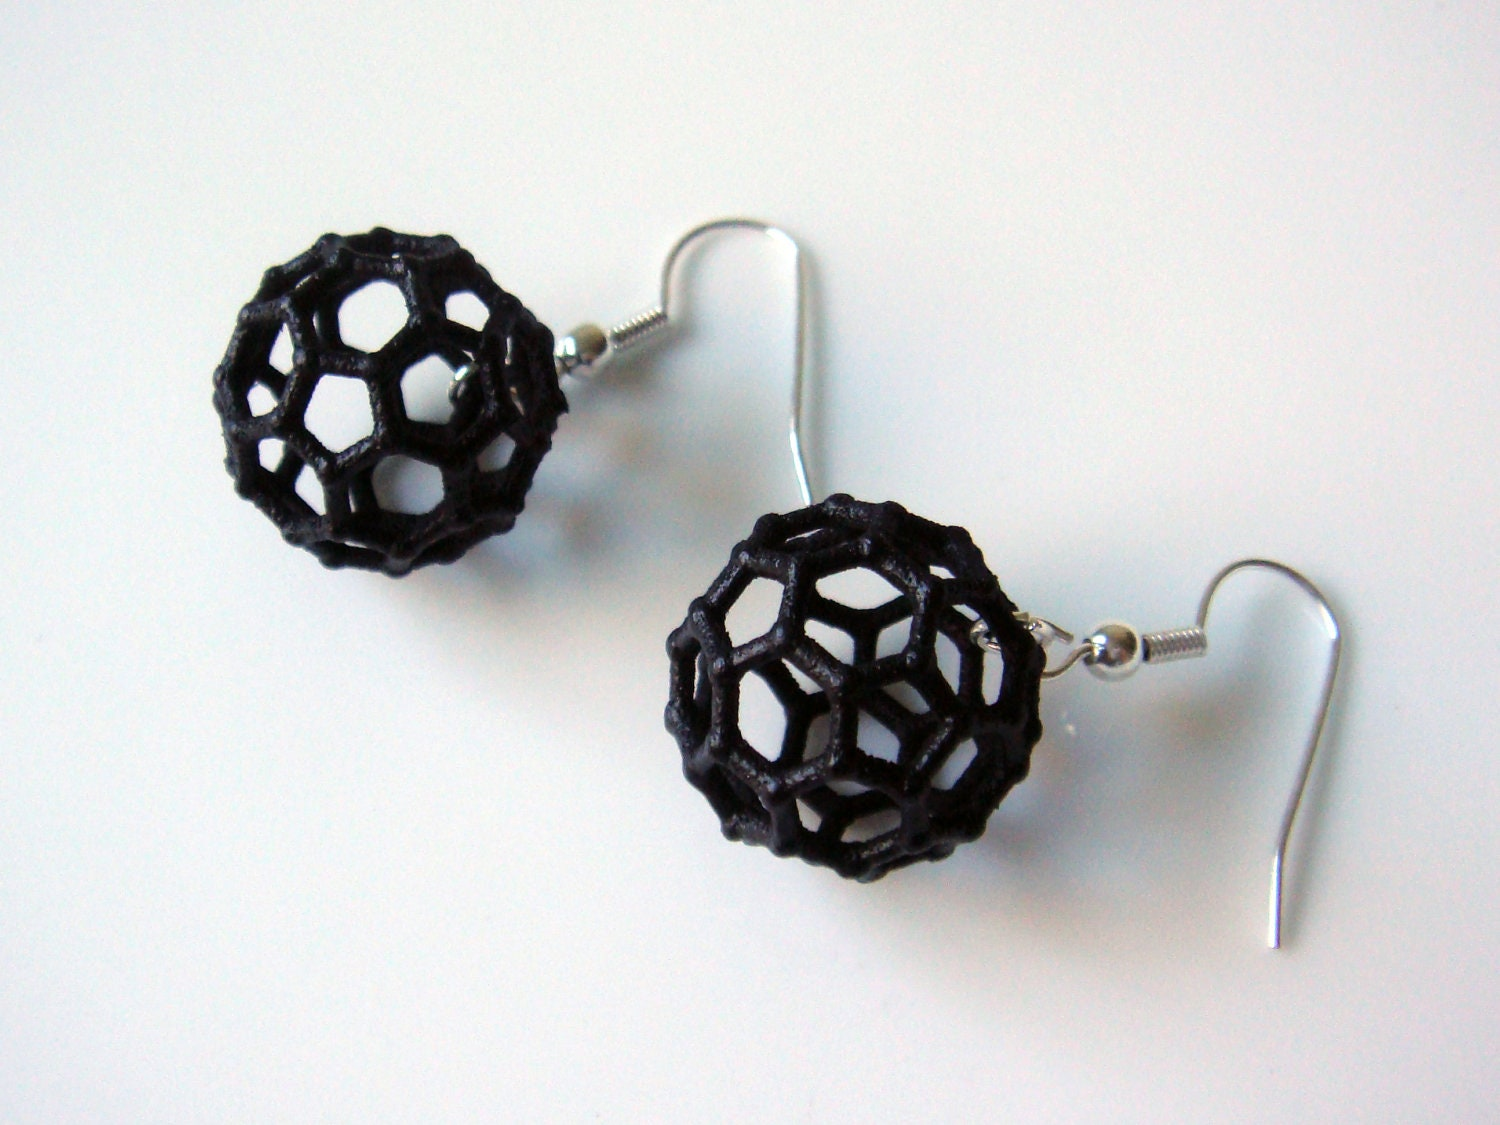 Buckyball Chemistry Molecule Earrings for scientists and engineers - Stark060